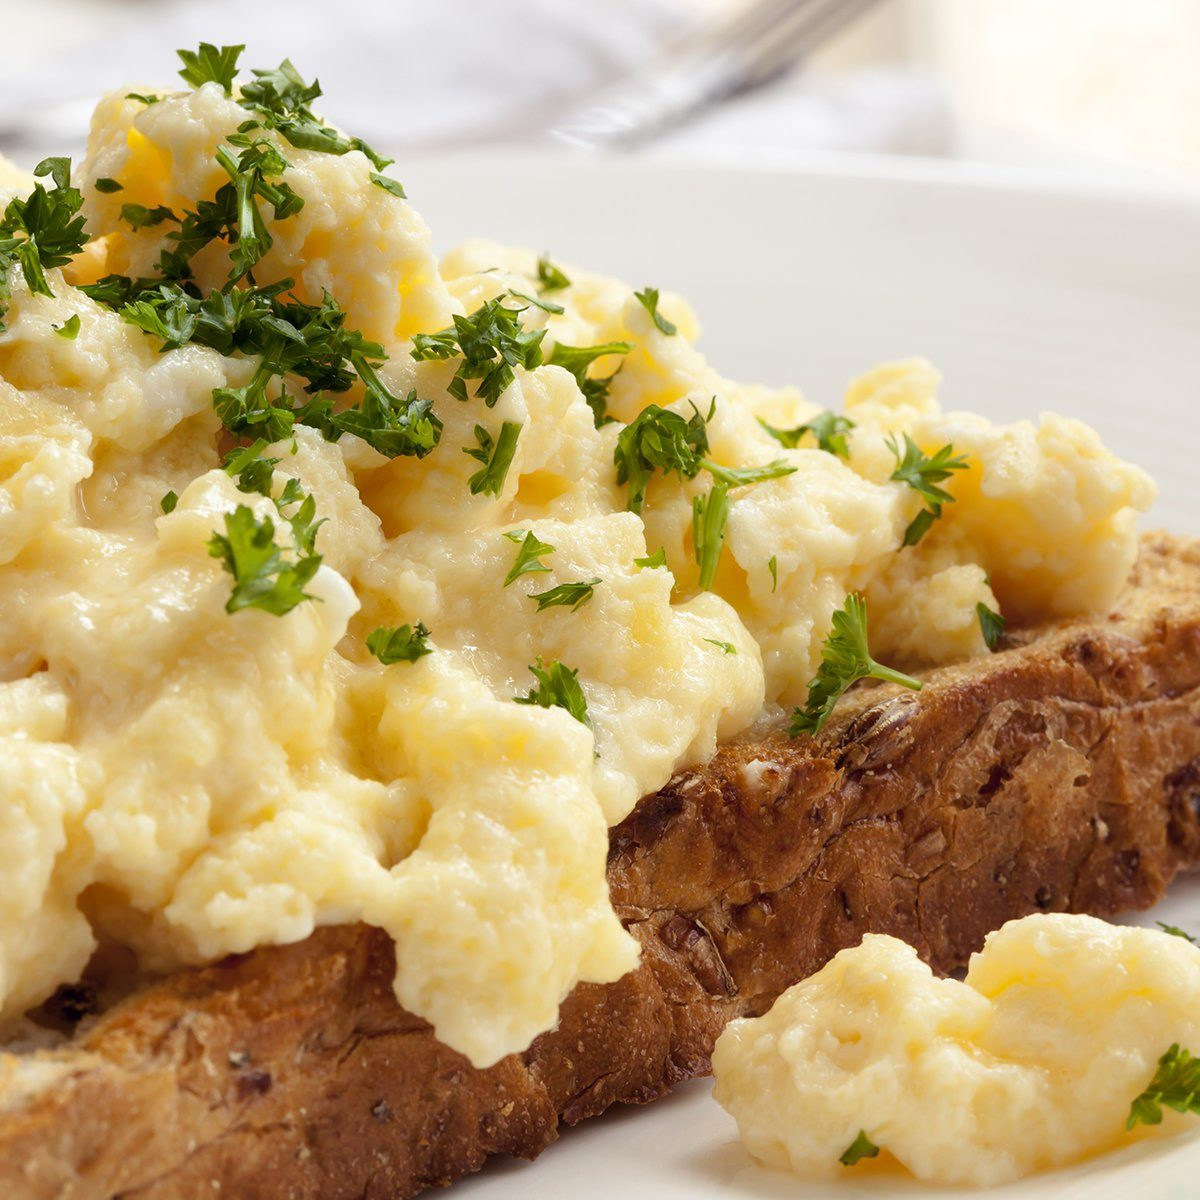 Scrambled eggs on toasted wholegrain bread.